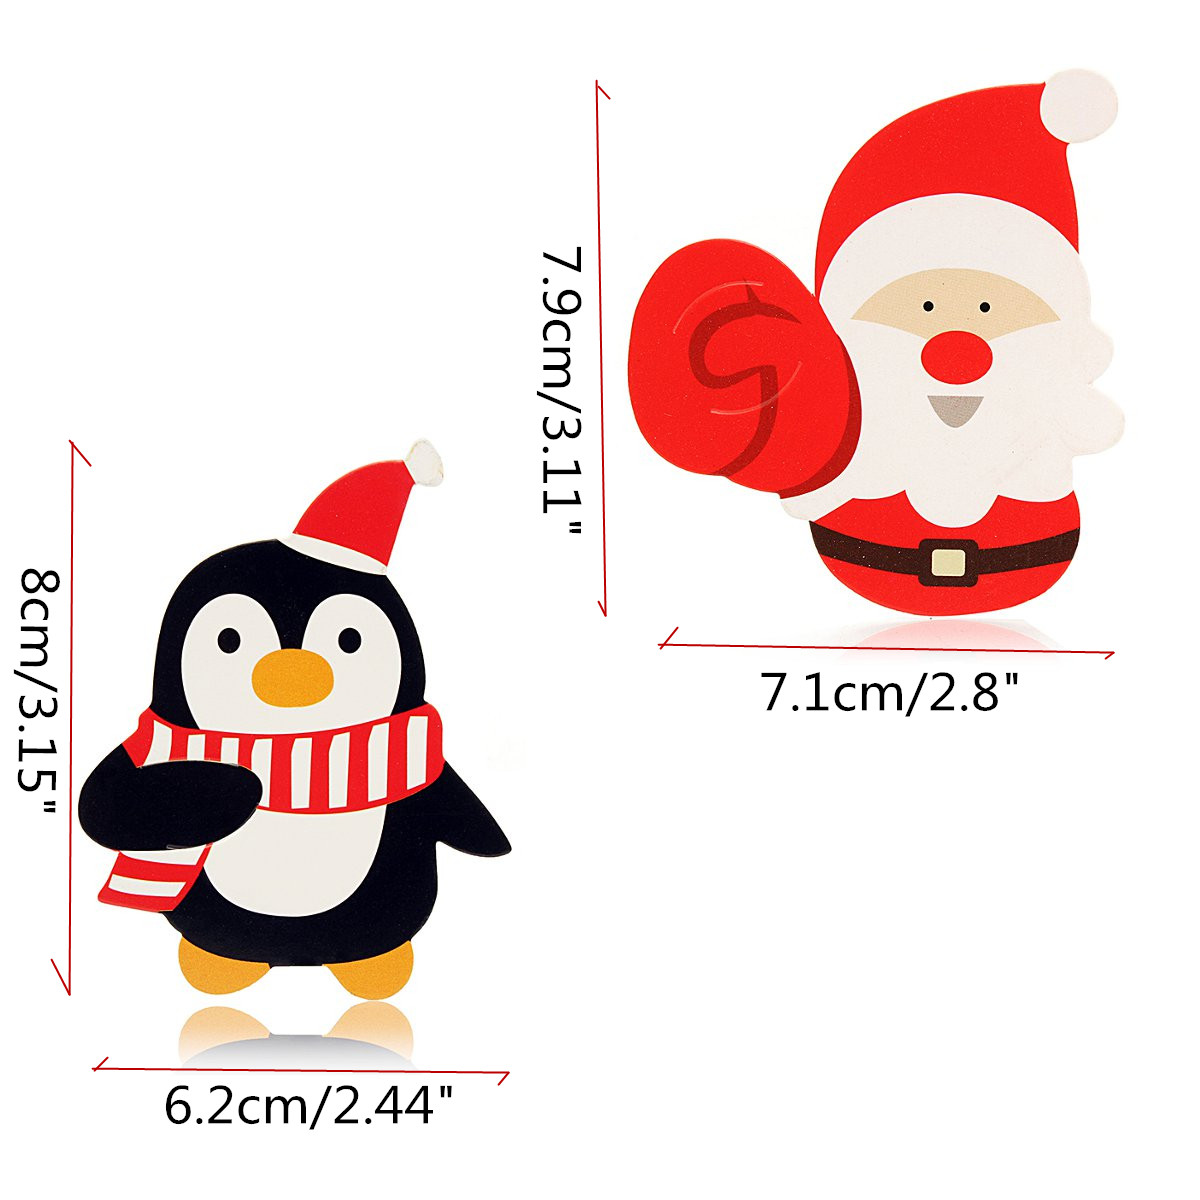 50Pcs/Lot Xmas Lollipop Decor Paper Card Santa Claus Penguin Patterns Candy Decor Holder Christmas Party Kids Favor Gifts